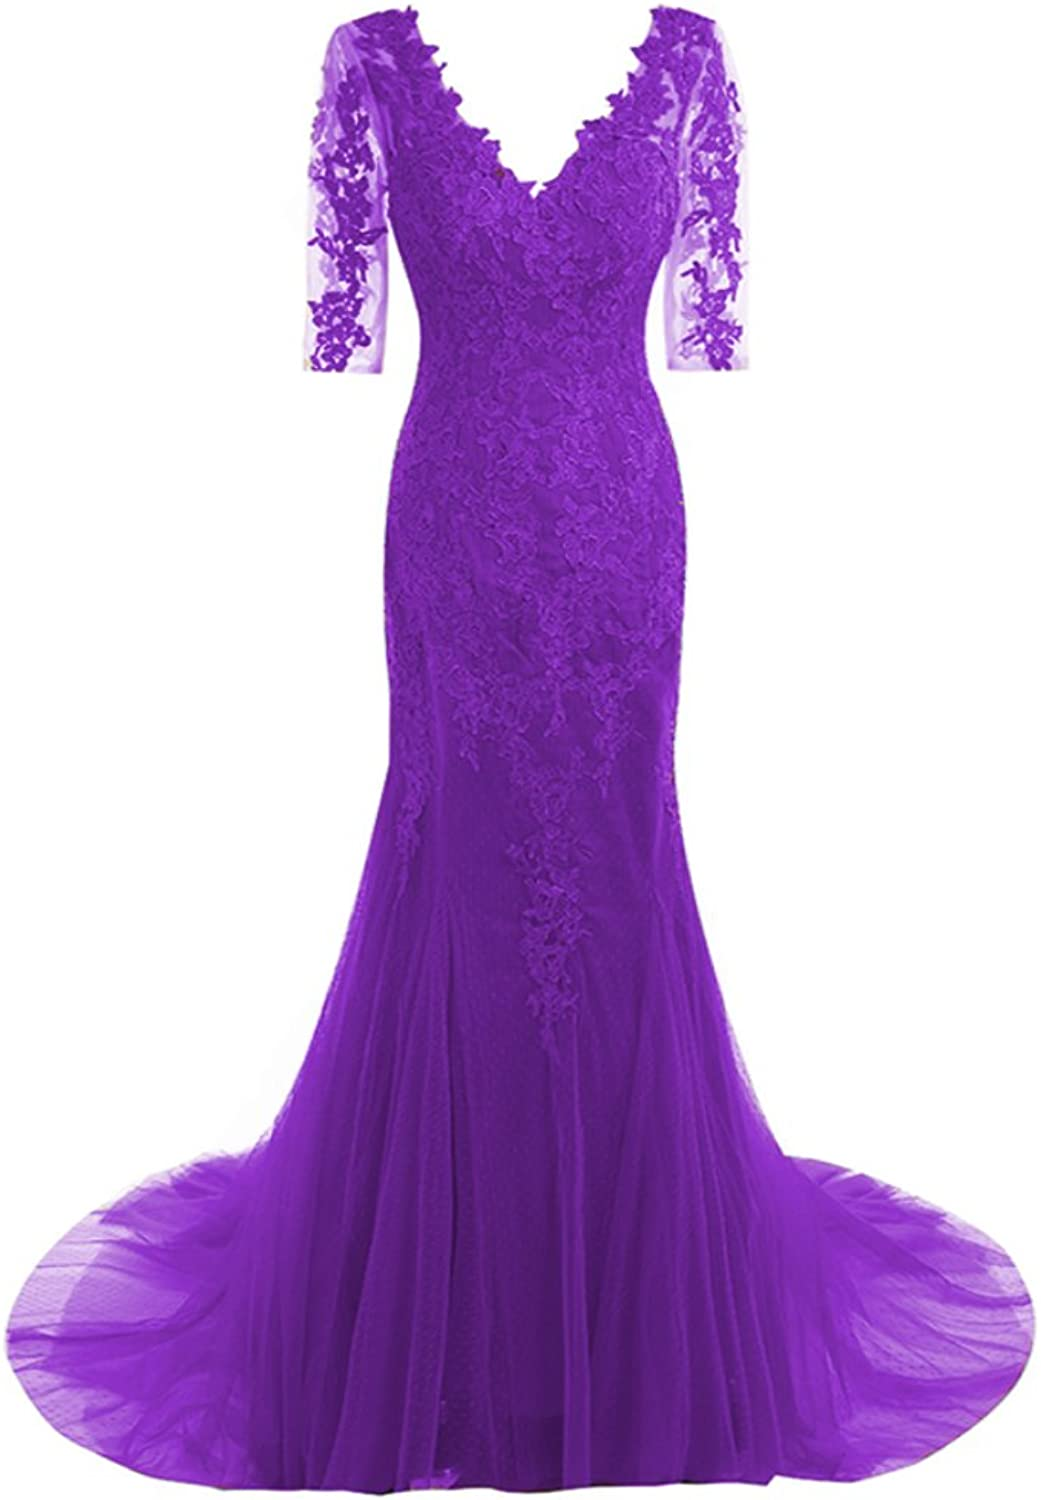 QiJunGe Modest V Neck Mermaid Evening Gowns Appliques Lace Half Sleeve Gowns